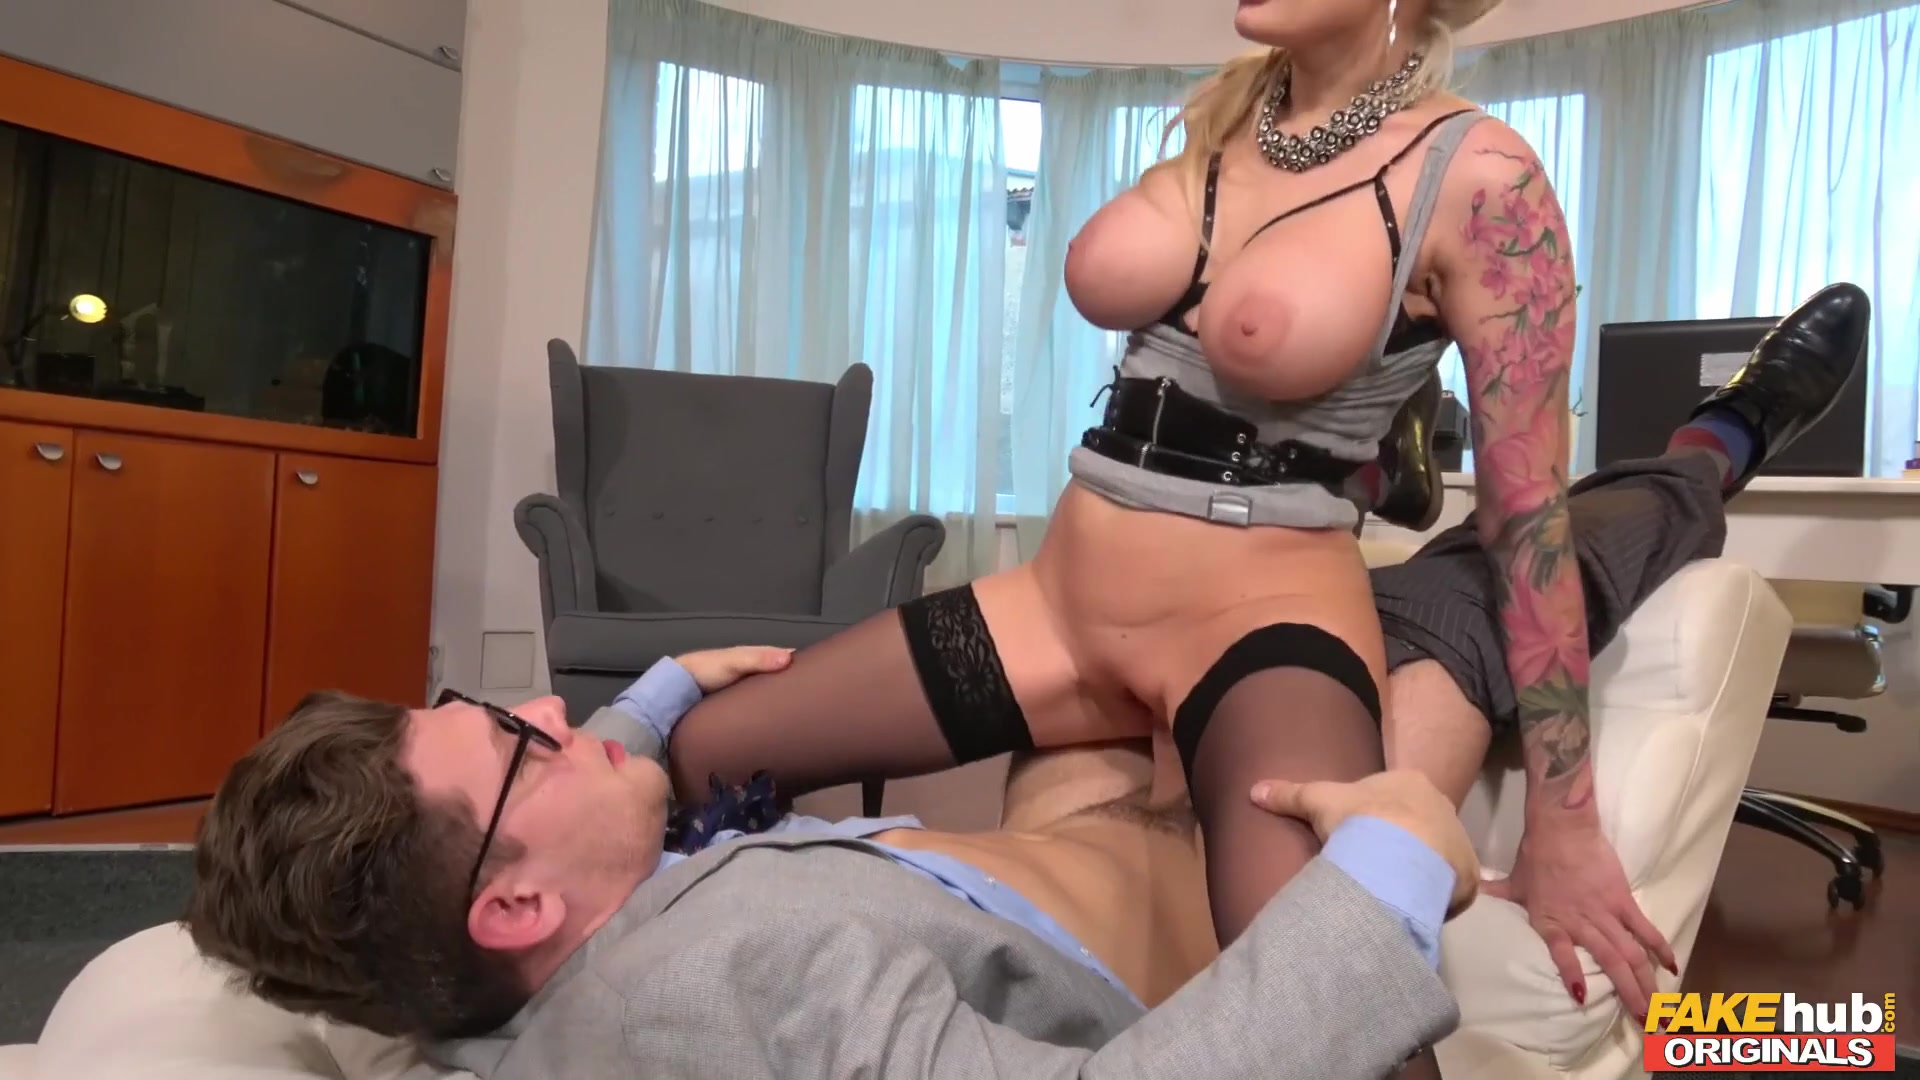 Dirty Therapy with busty blonde pornstar Kayla Green & shrink Michael Fly - fake tits